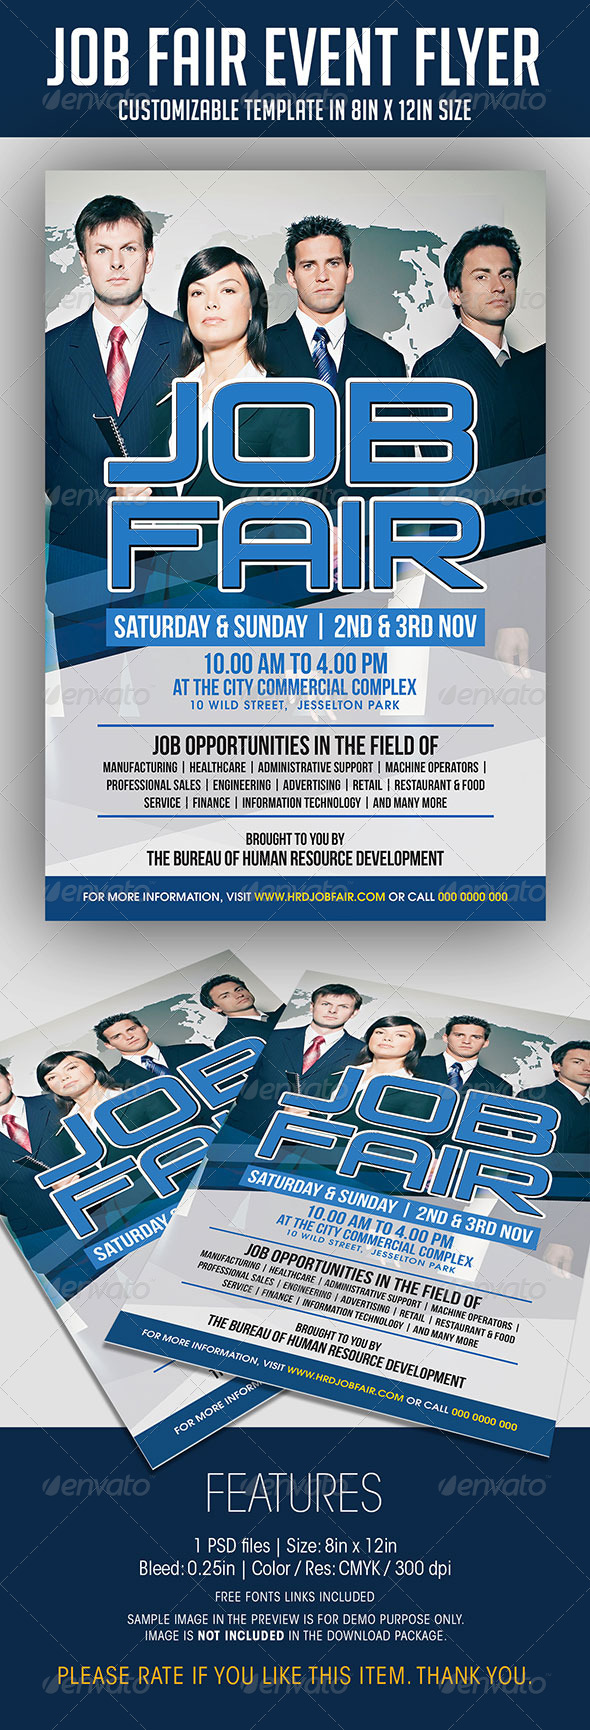 job fair event flyer events flyers